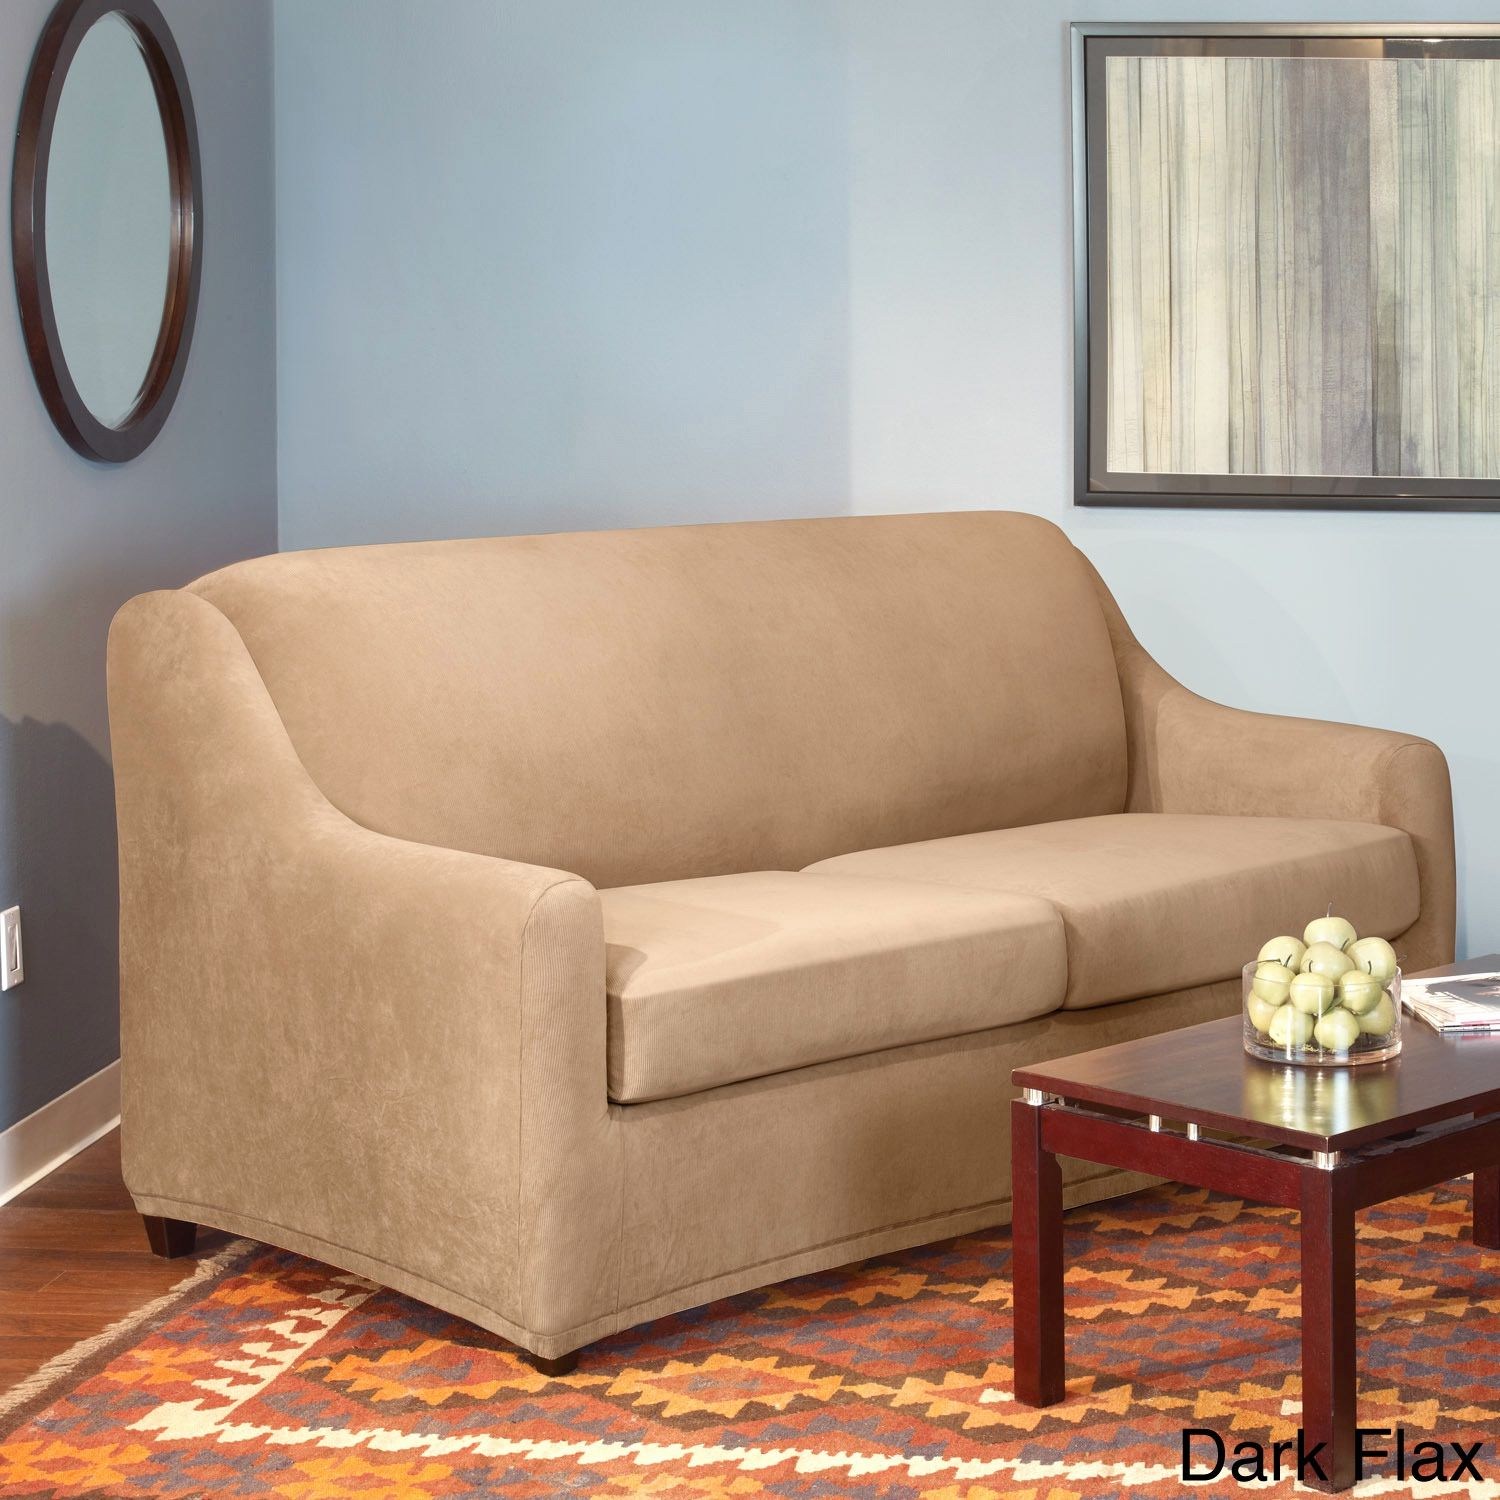 Luxury microfiber sleeper sofa art microfiber sleeper sofa beautiful brown microfiber small twin loveseat sleeper sofa